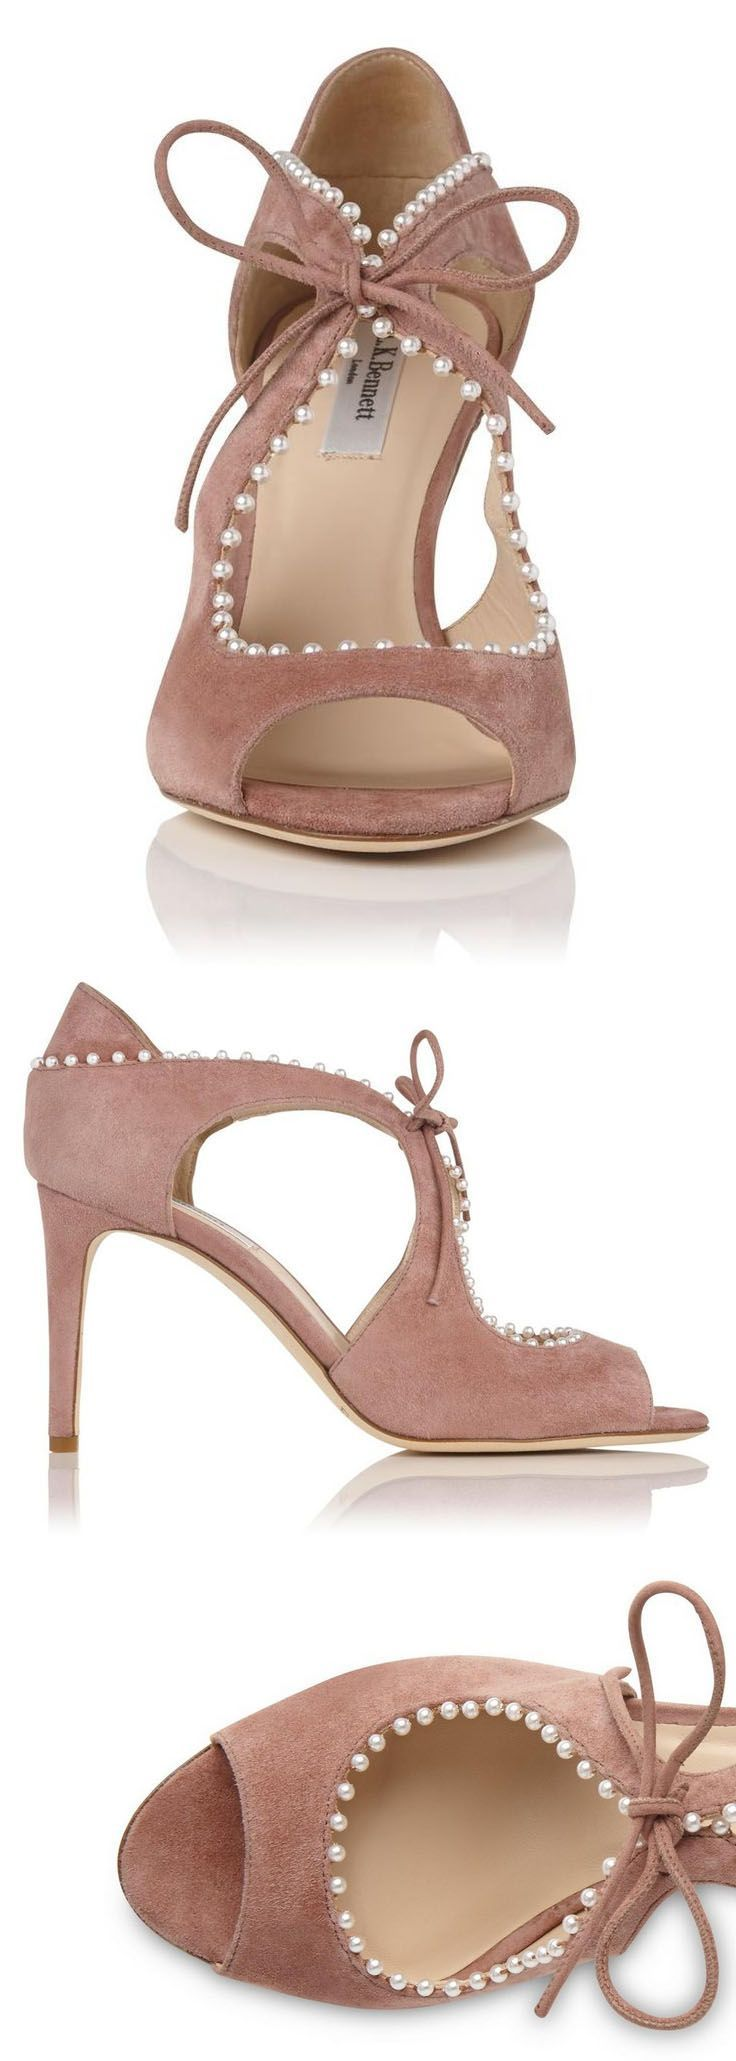 L.K. Bennett Nude Shoes, with little faux Pearl. Evoke a flamenco spirit with Ellena. This sultry cut-out sandal, in pink suede, features a playful pom pom trim, lending an artisanal touch to eveningwear. Let the vertiginous heels take printed, brocade dresses to new heights. Christmas Gifts for her. #christmas #giftsforher #fashion #presents #shoes #affiliatelink #shoeaddict